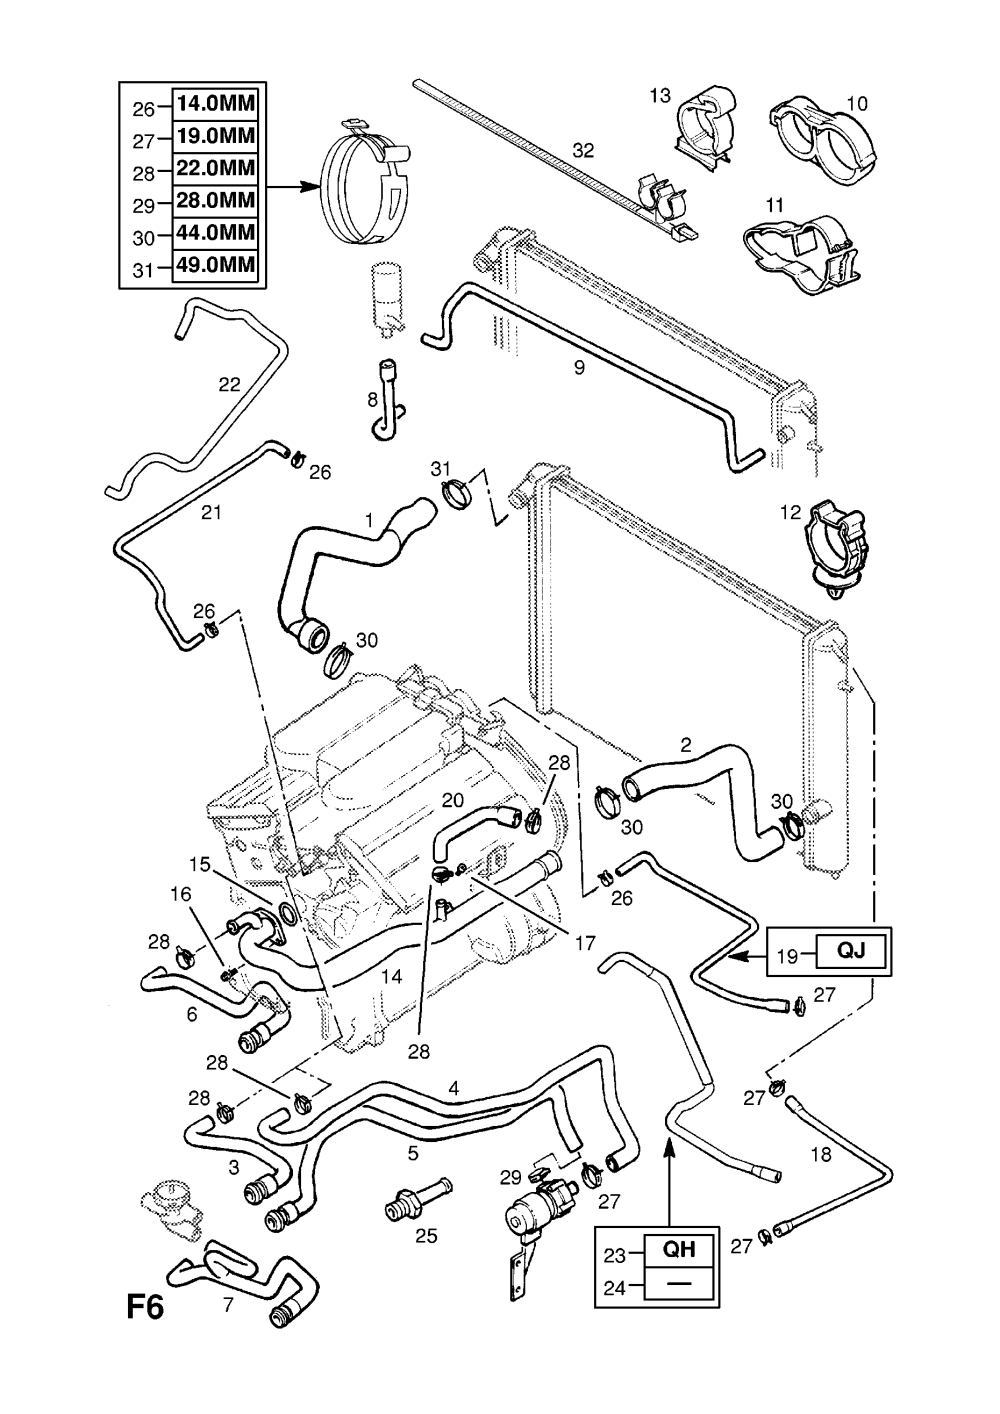 medium resolution of hoses and pipes contd x25xe l80 y26se ly9 x30xe l81 y32se la3 l81 engine diagram